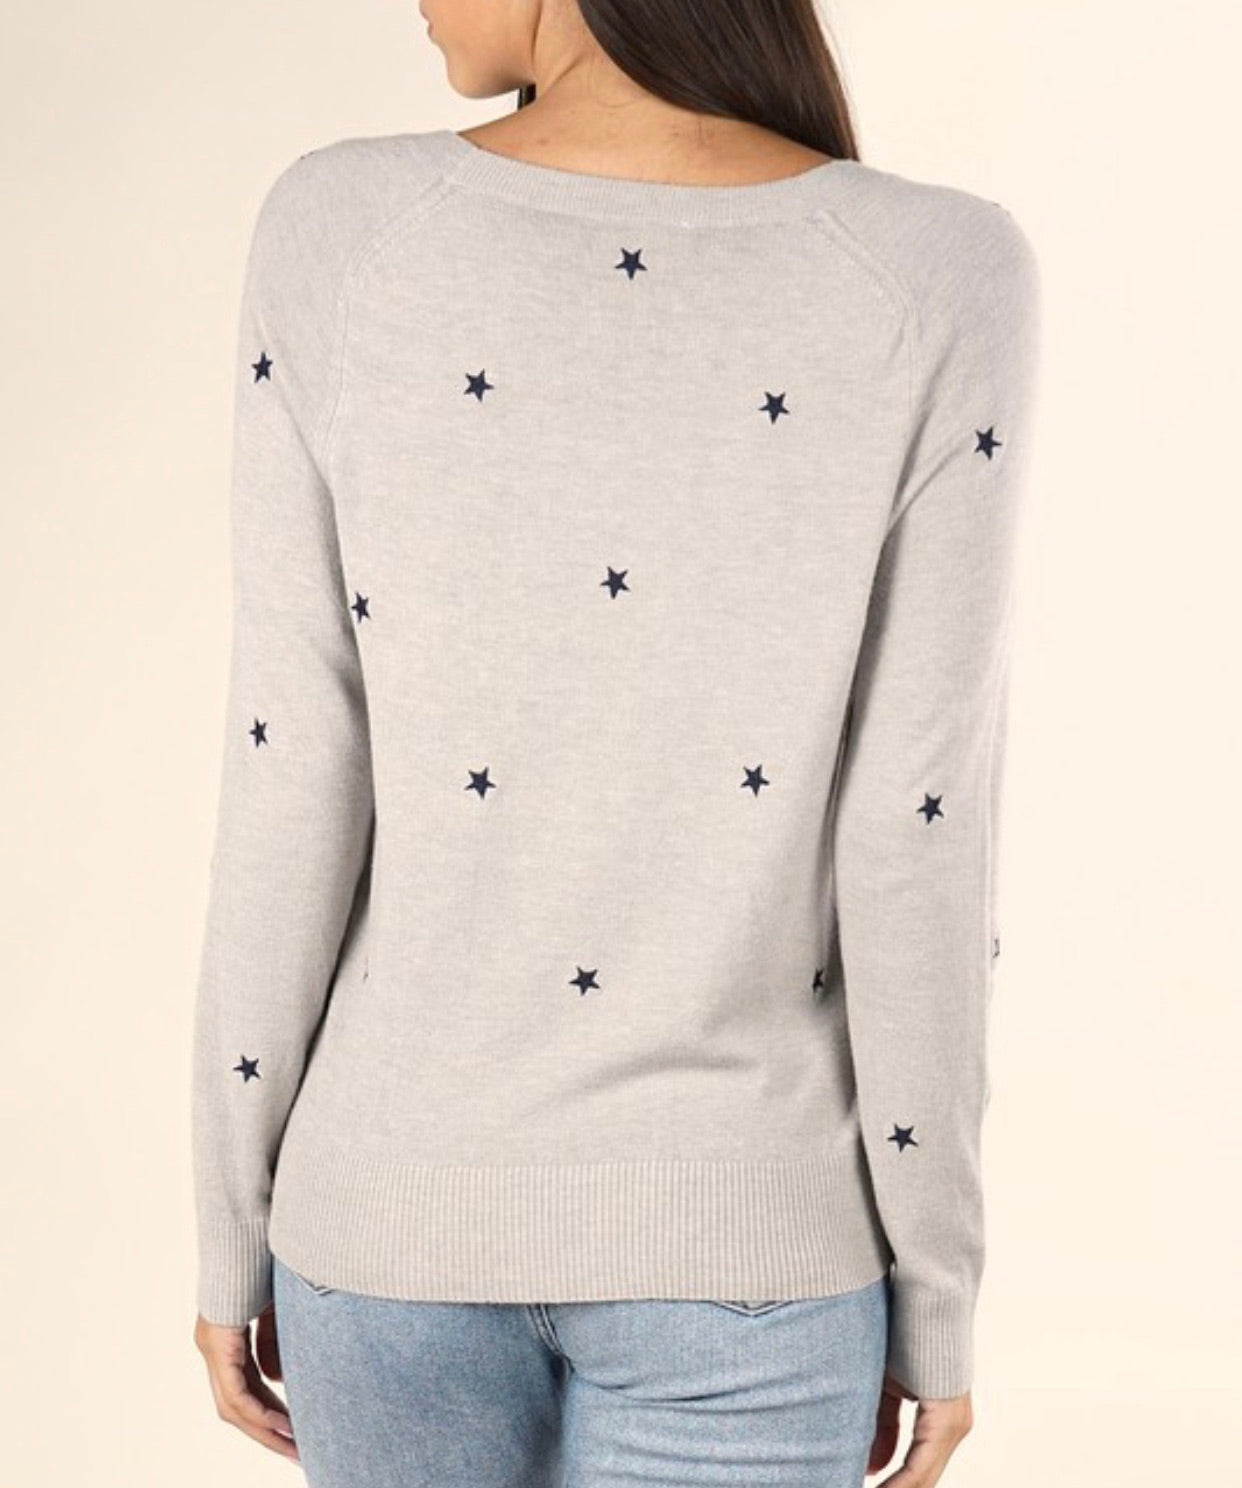 Stars Heather Grey Knit Sweater